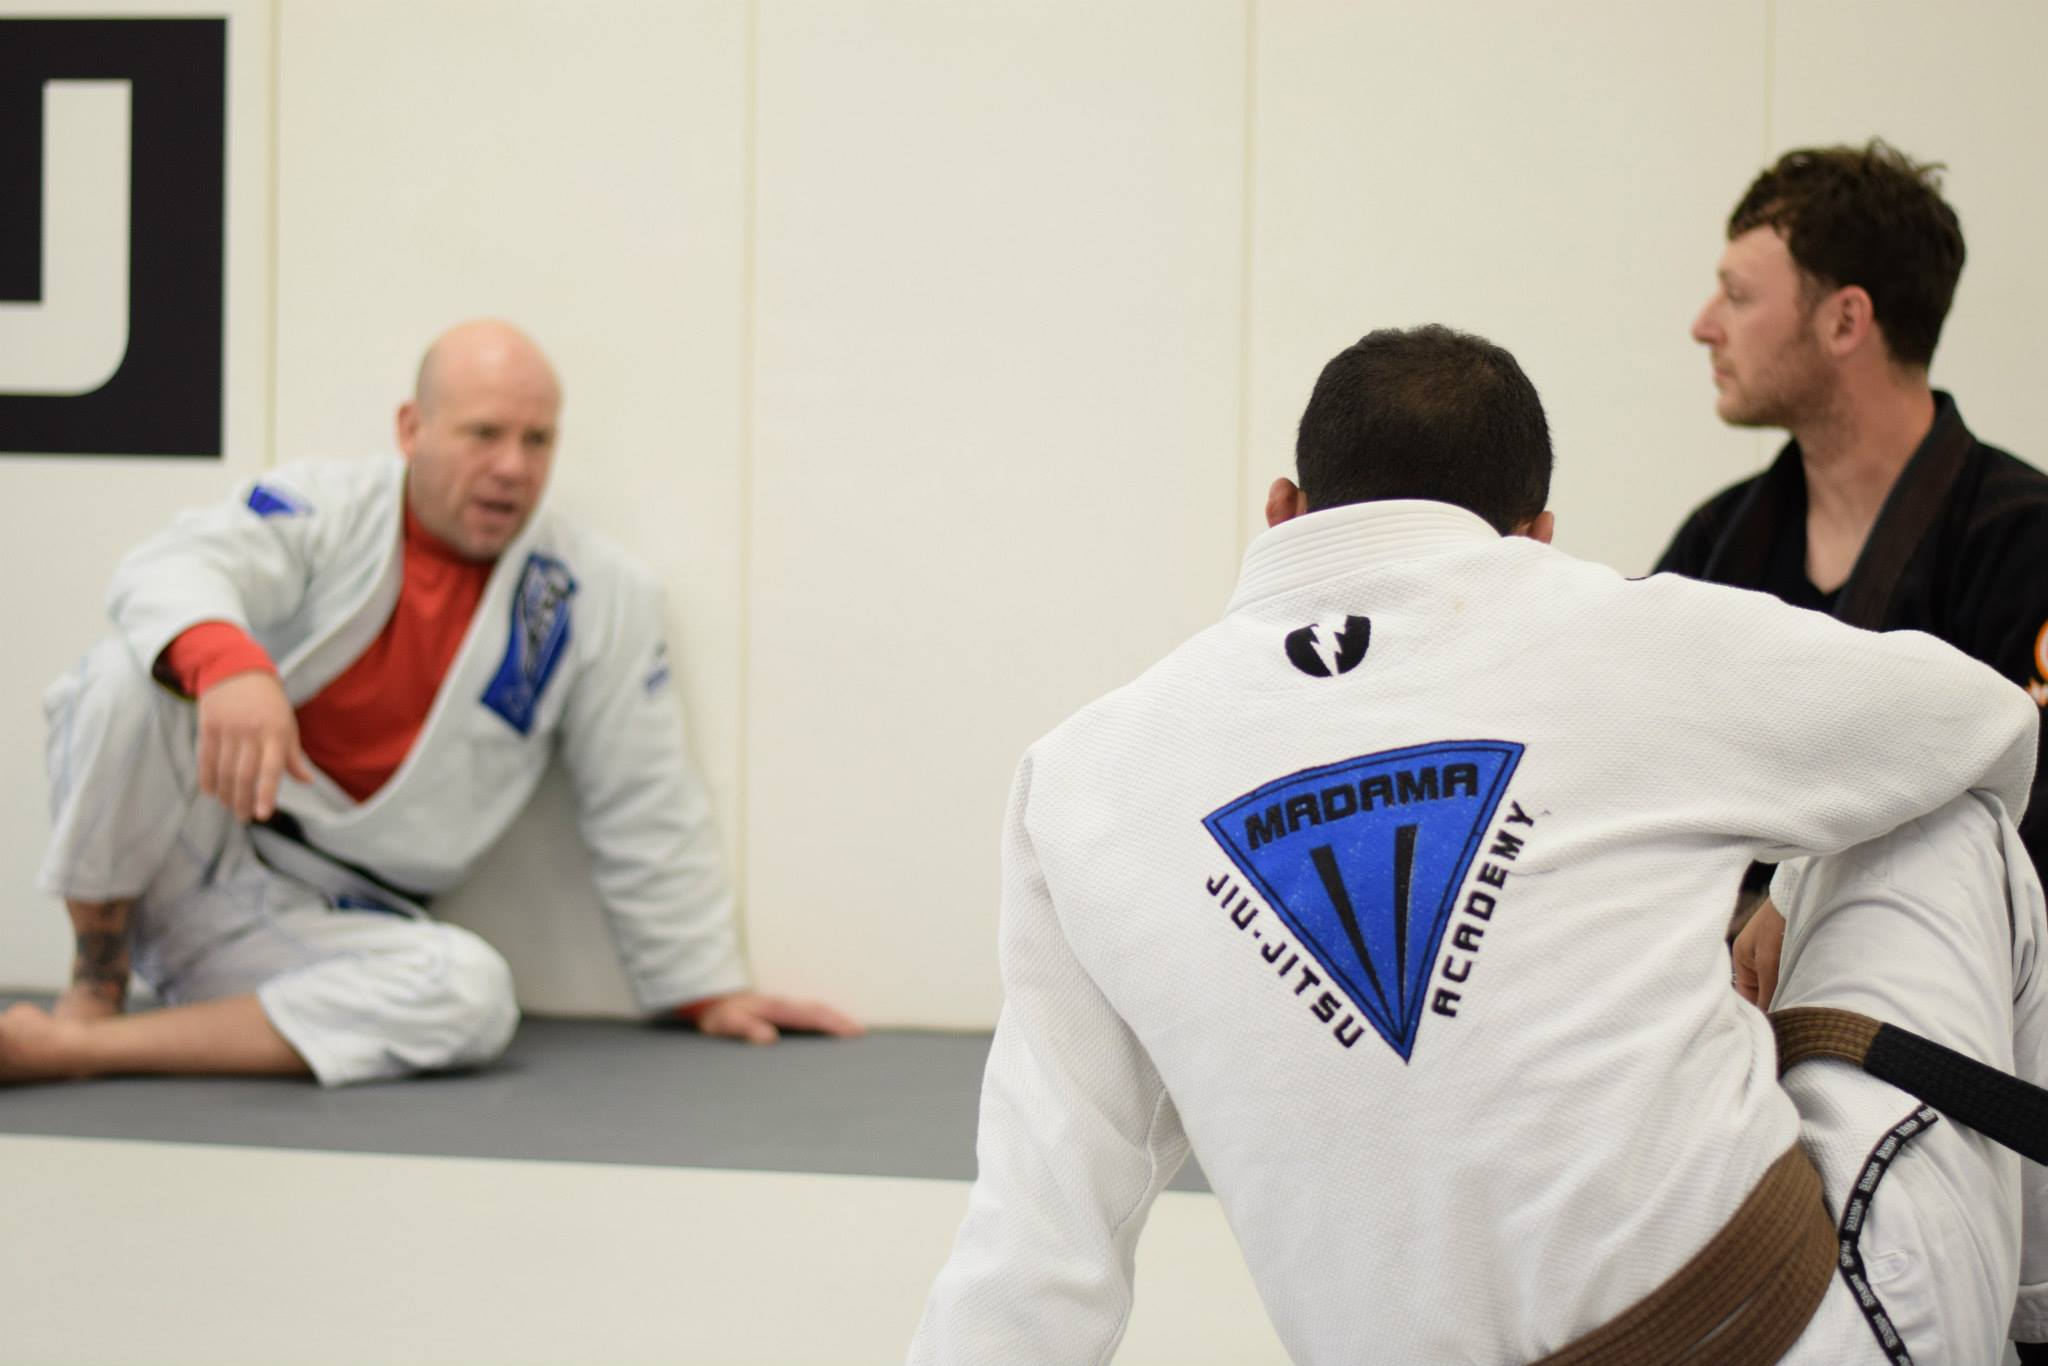 Professor Madama Instructing Two Brown Belts